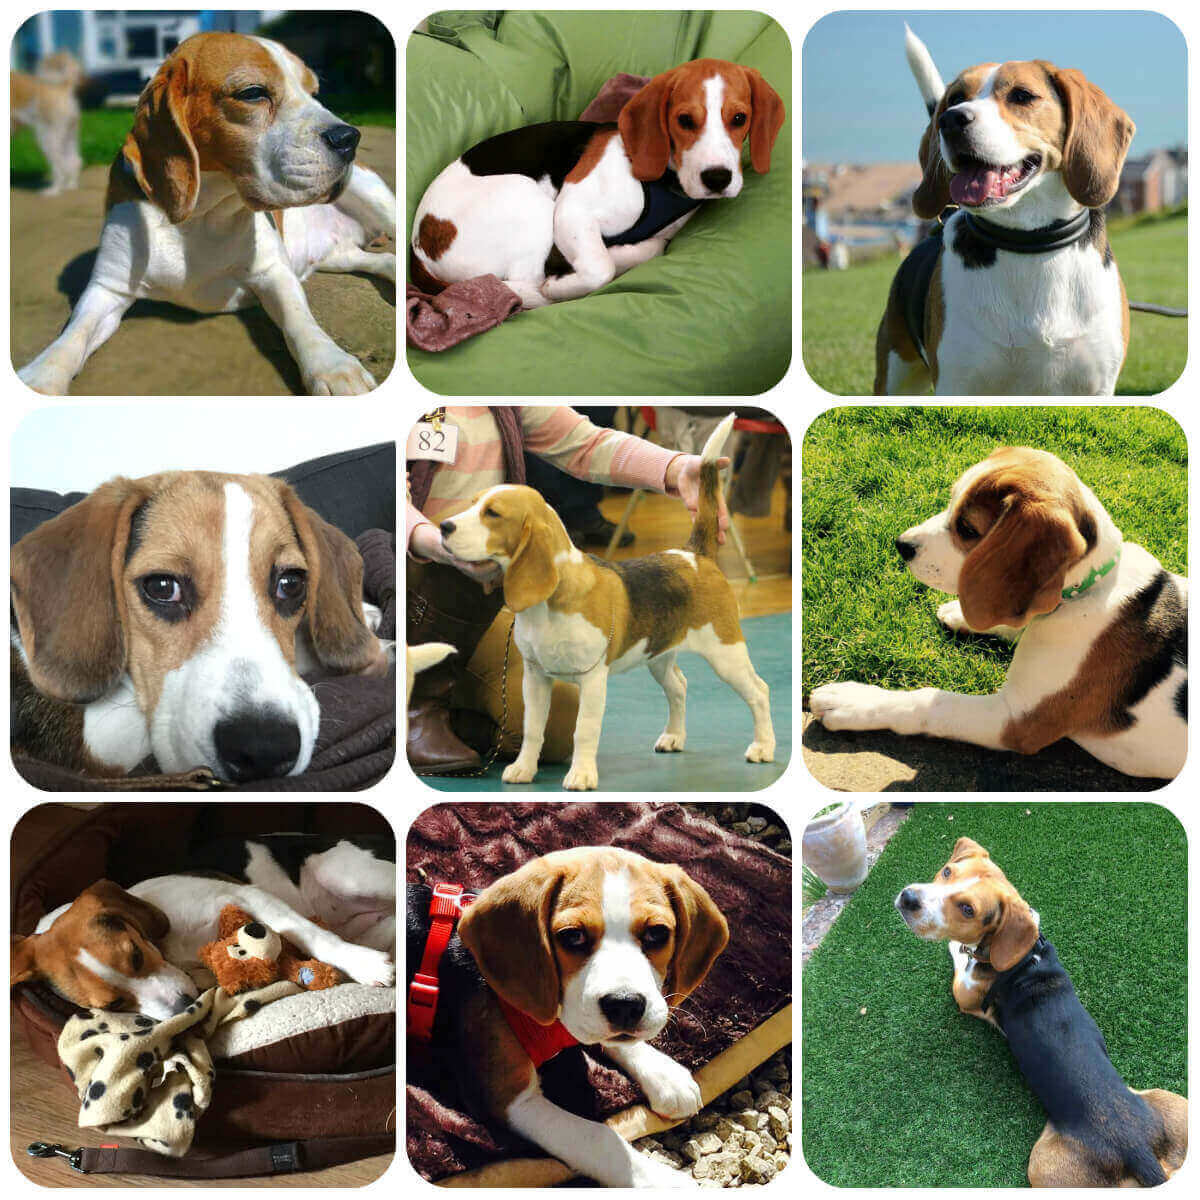 Beagle collage, part of BorrowMyDoggy's guide to dog breeds.